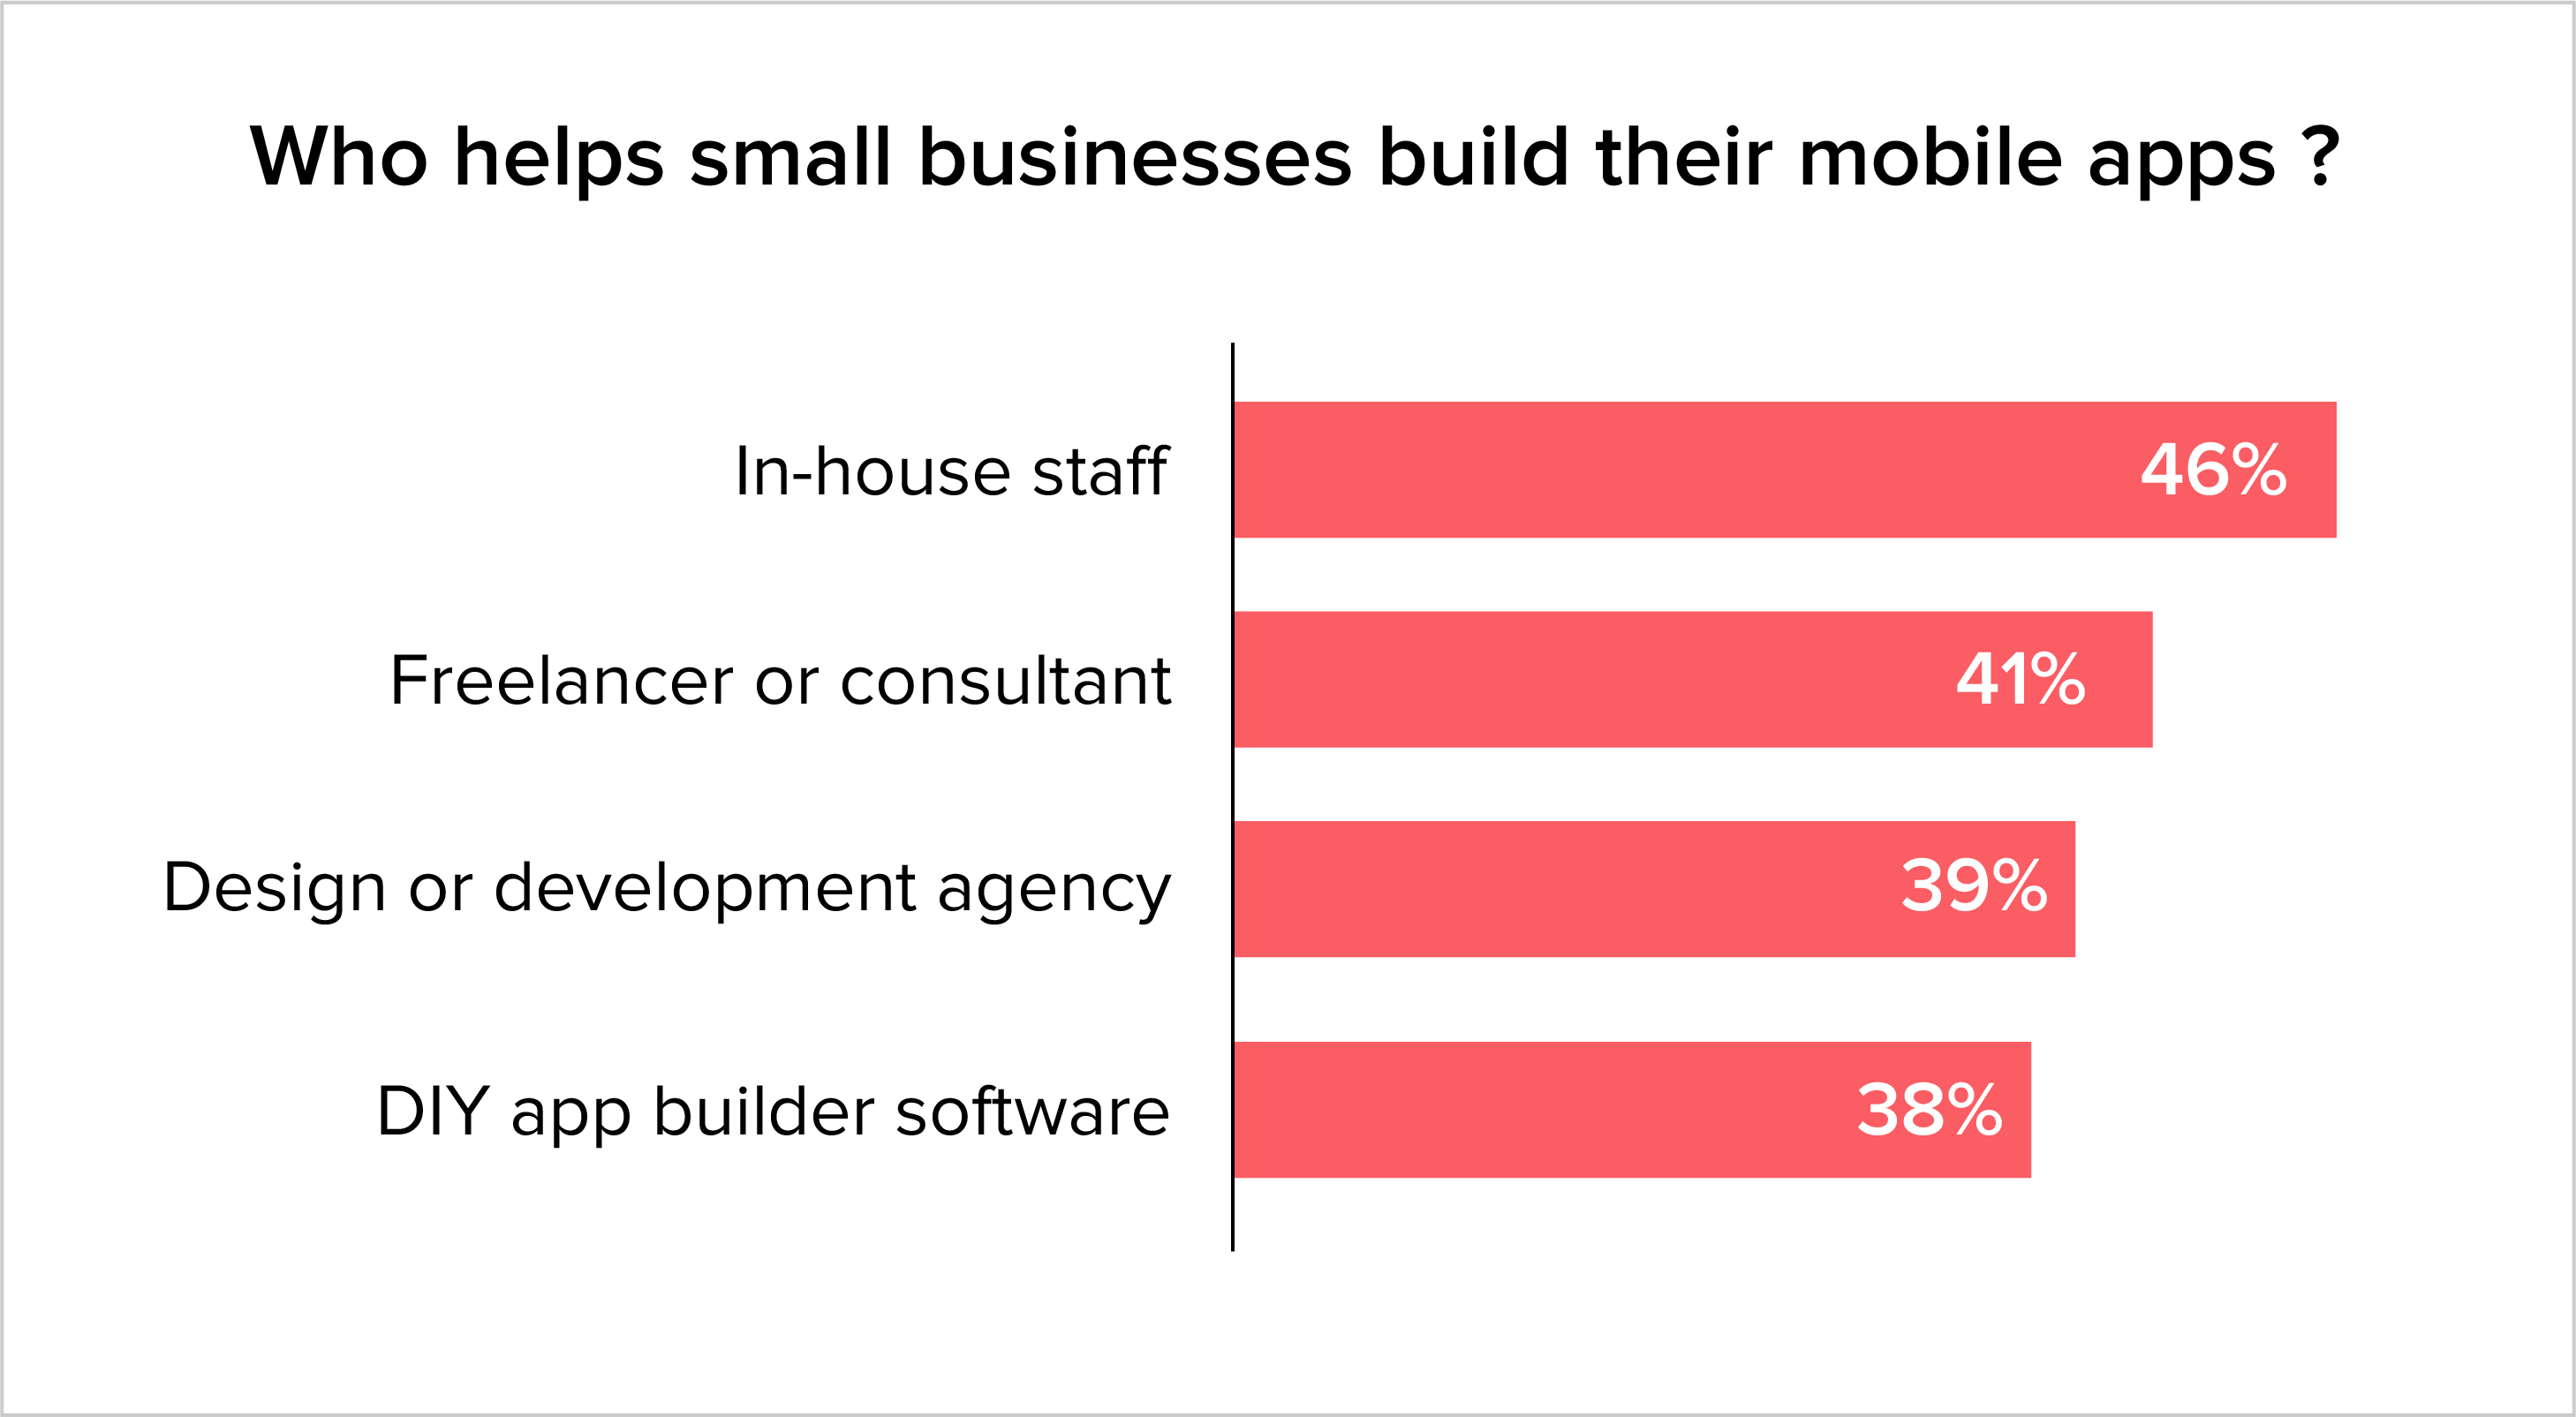 who helps small businesses built their mobile apps